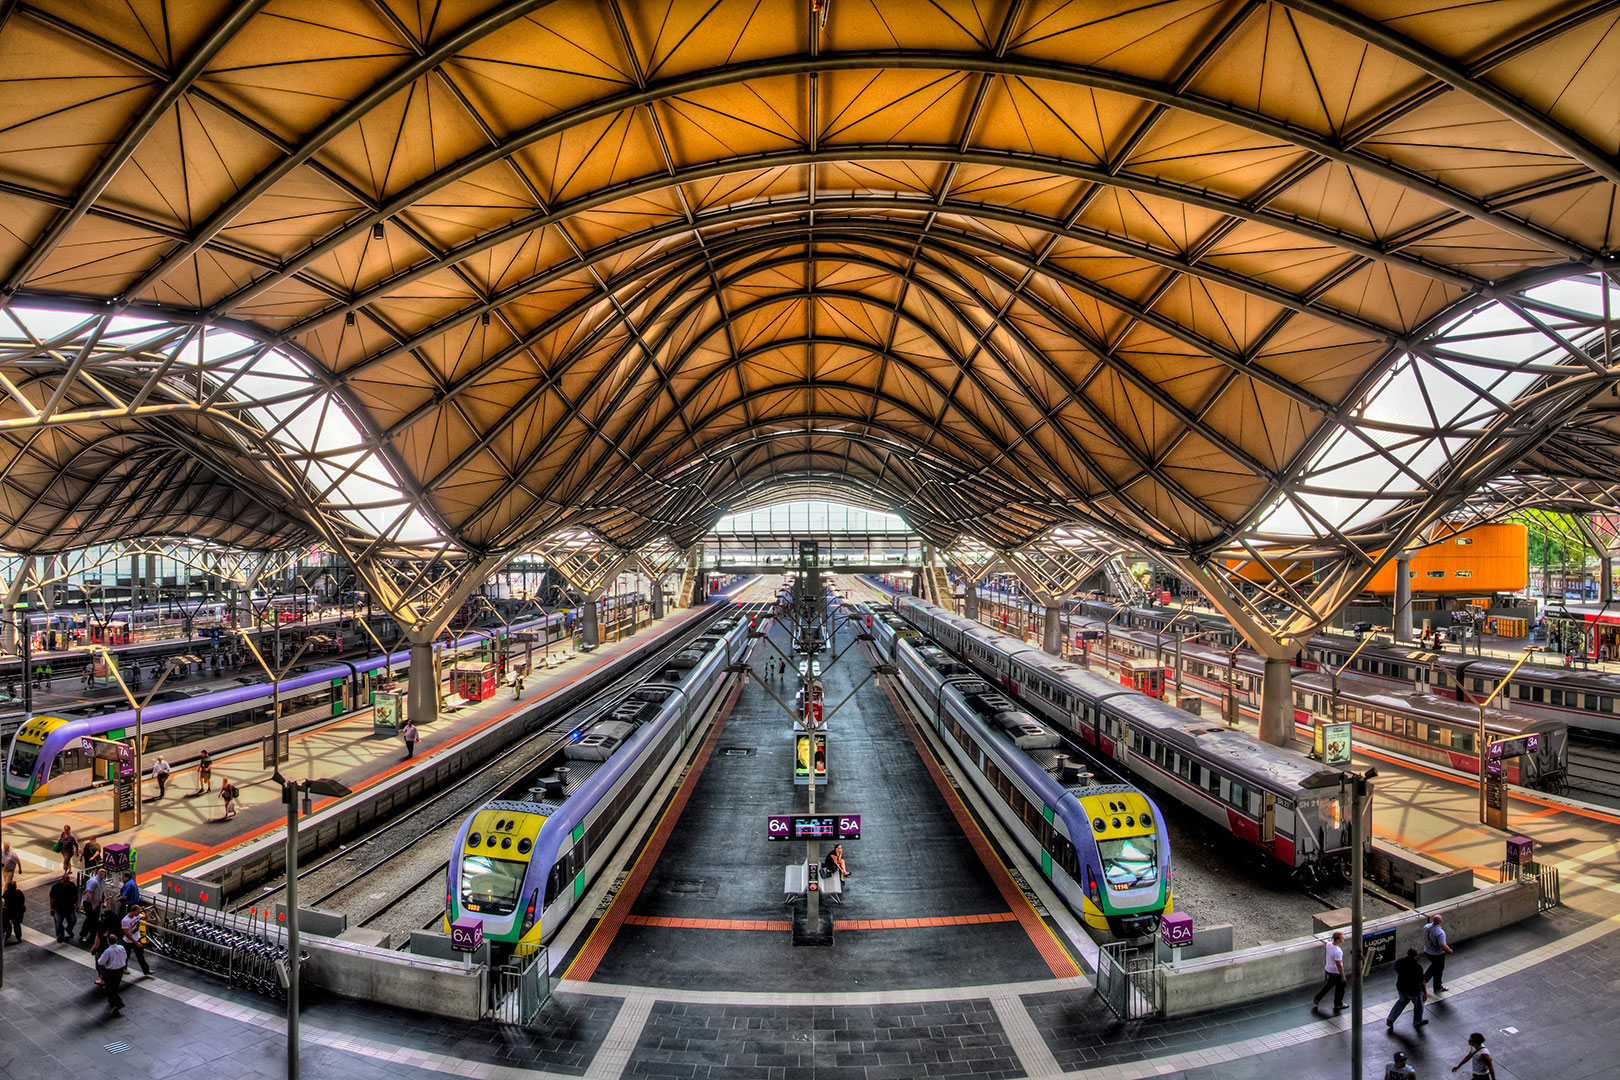 Southern Cross Station partnered with Father James Grant Foundation to tackle Youth Unemployment